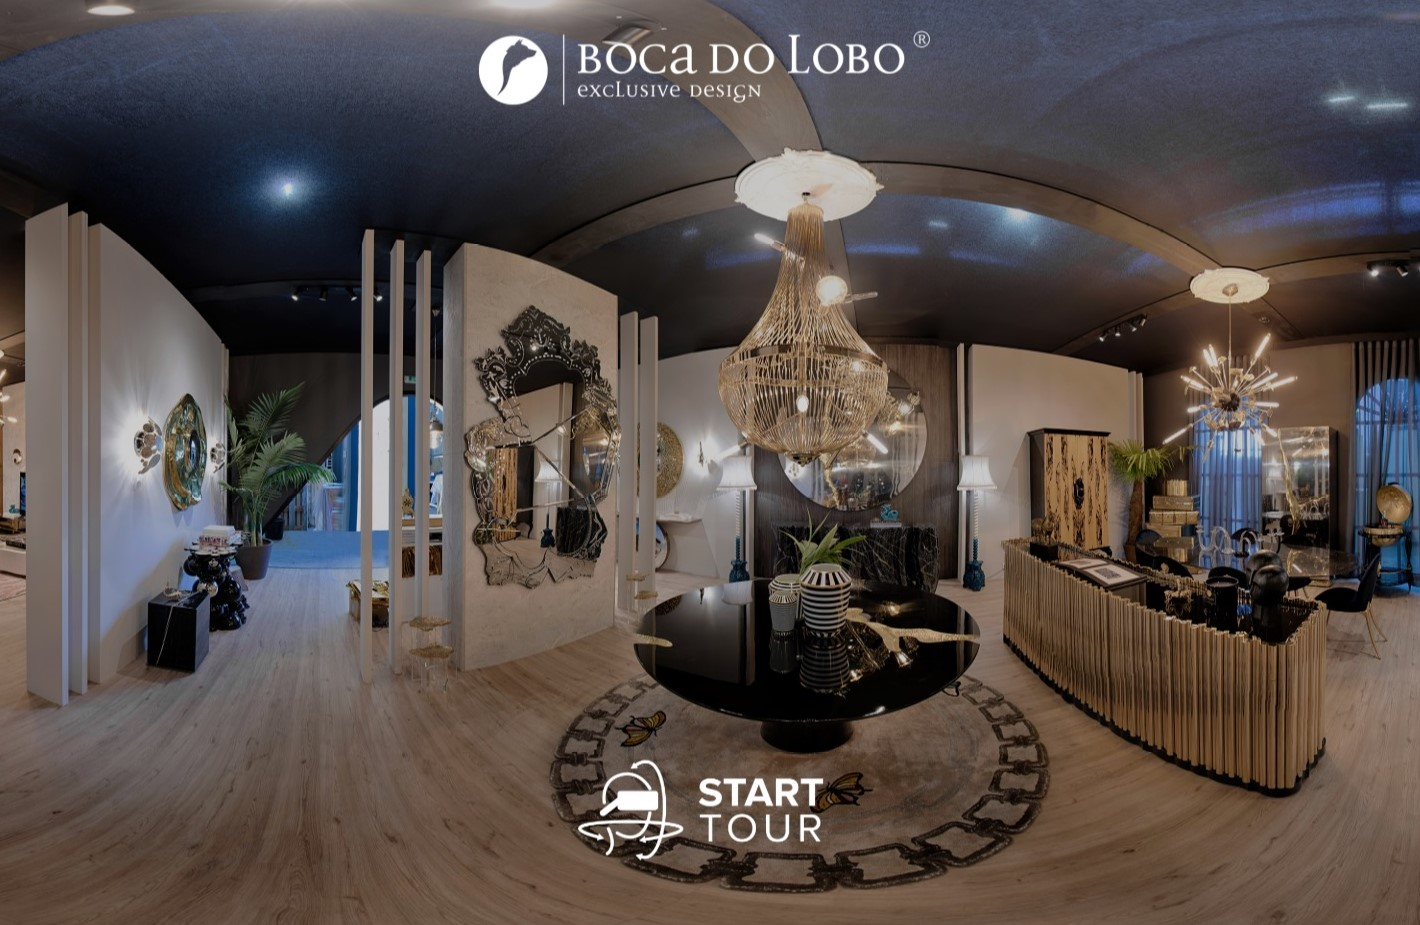 maison et objet 2020 Maison Et Objet 2020: Luxury Stands' Virtual Tour  maison objet 2020 luxury stands virtual tour 1